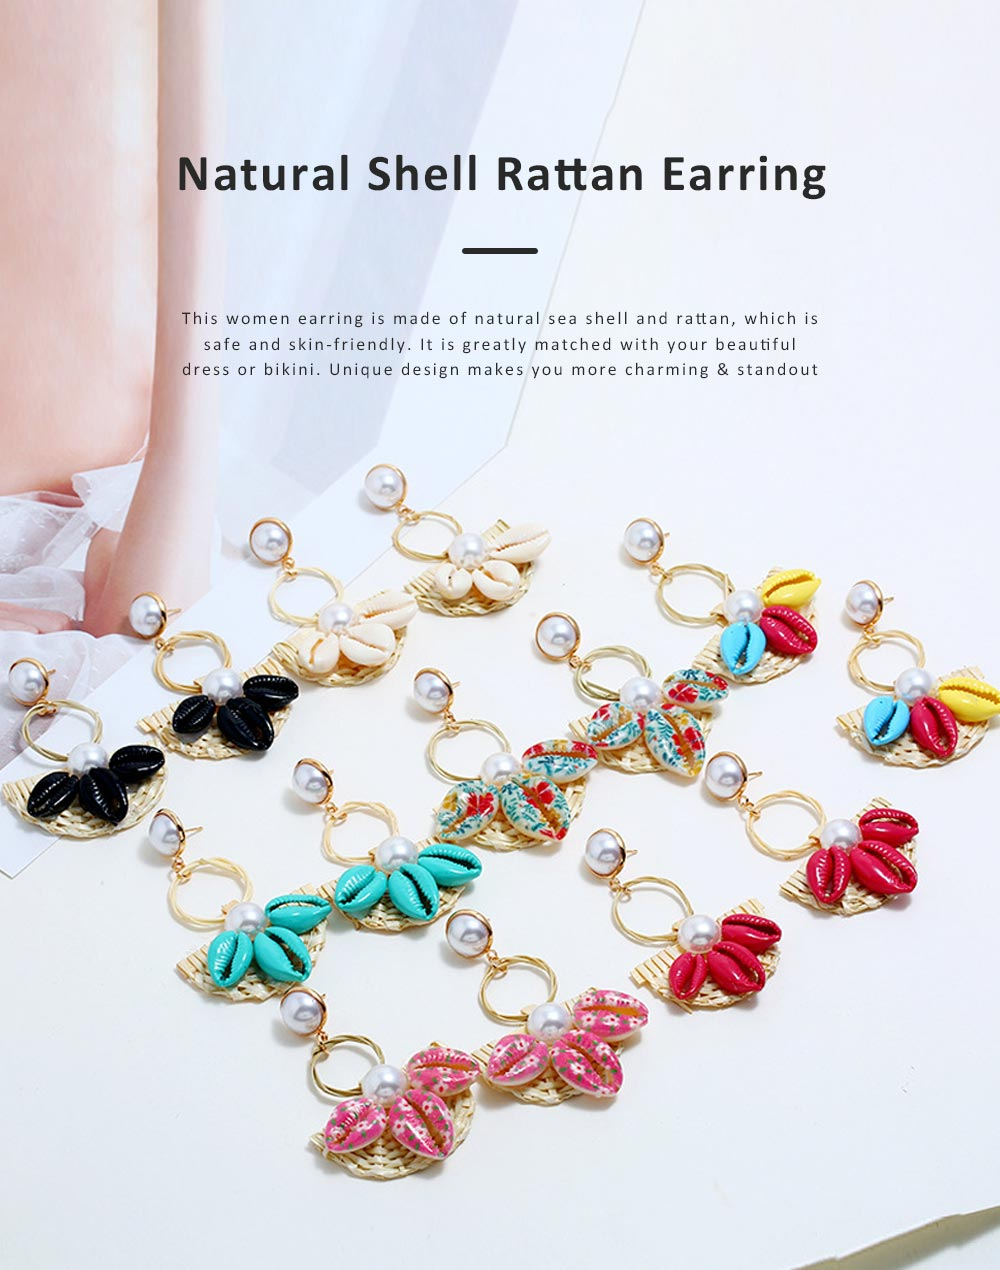 Natural Ocean Style Earring Colorful Outfit Accessory Jewelry Shell Rattan Pearl Earring for Women Girls 0